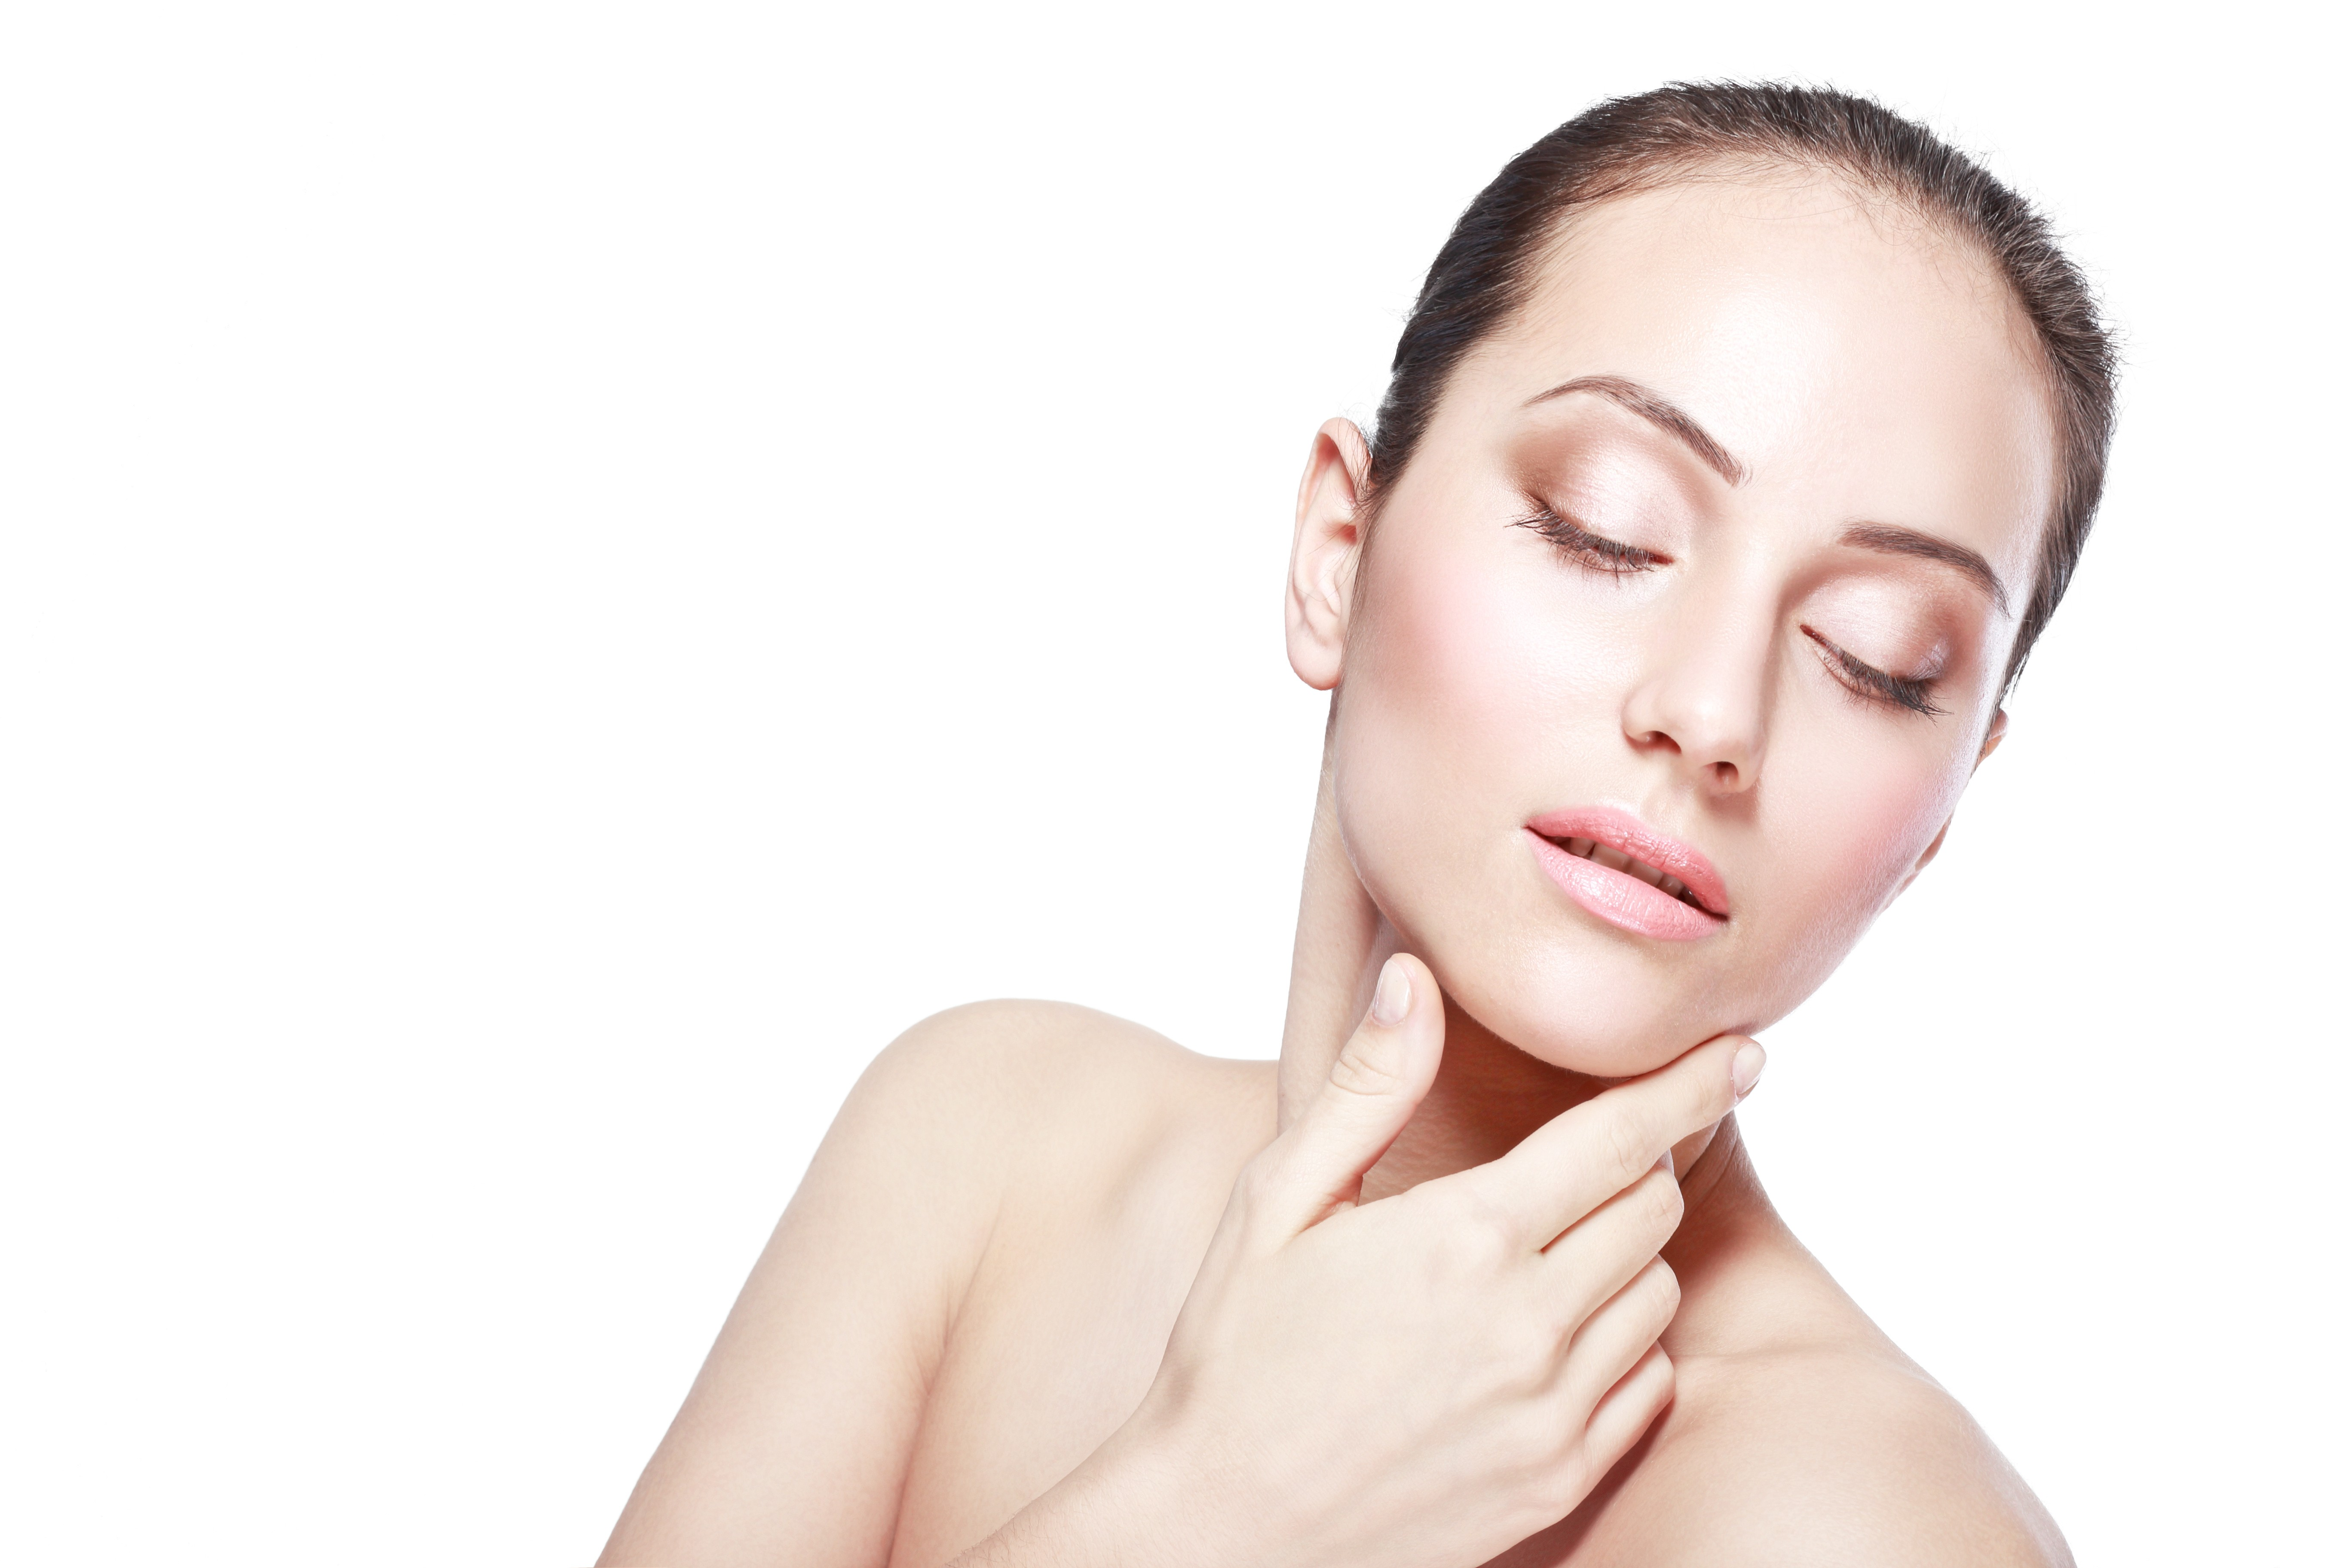 Tips to maintain glowing skin